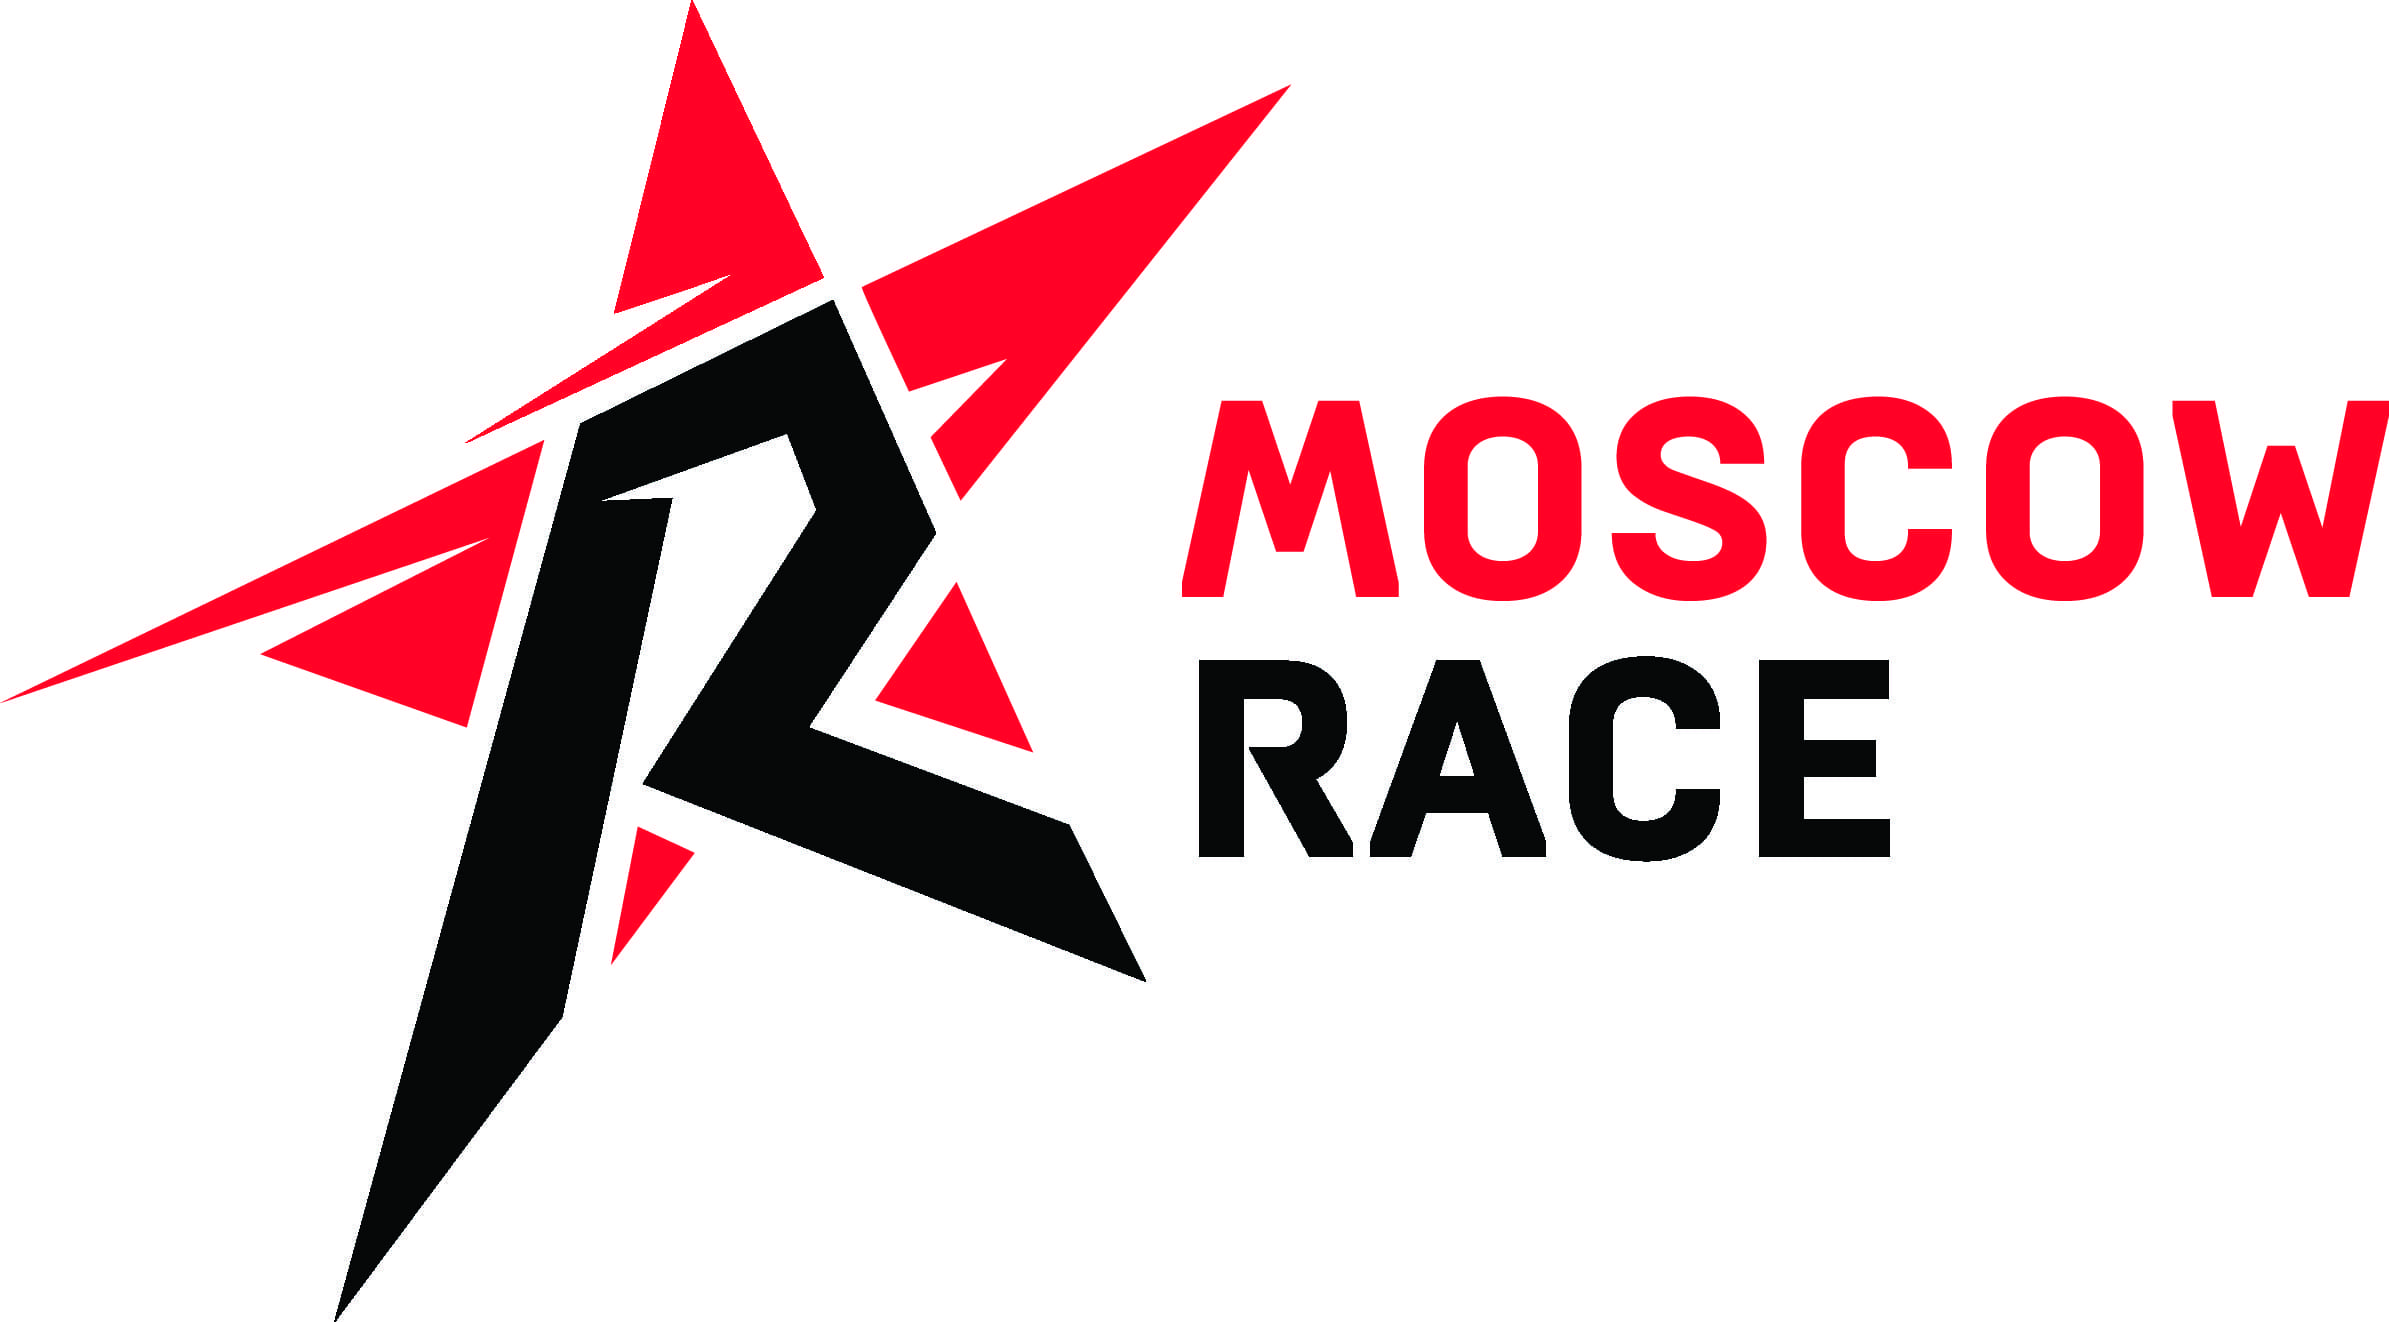 MOSCOW RACE